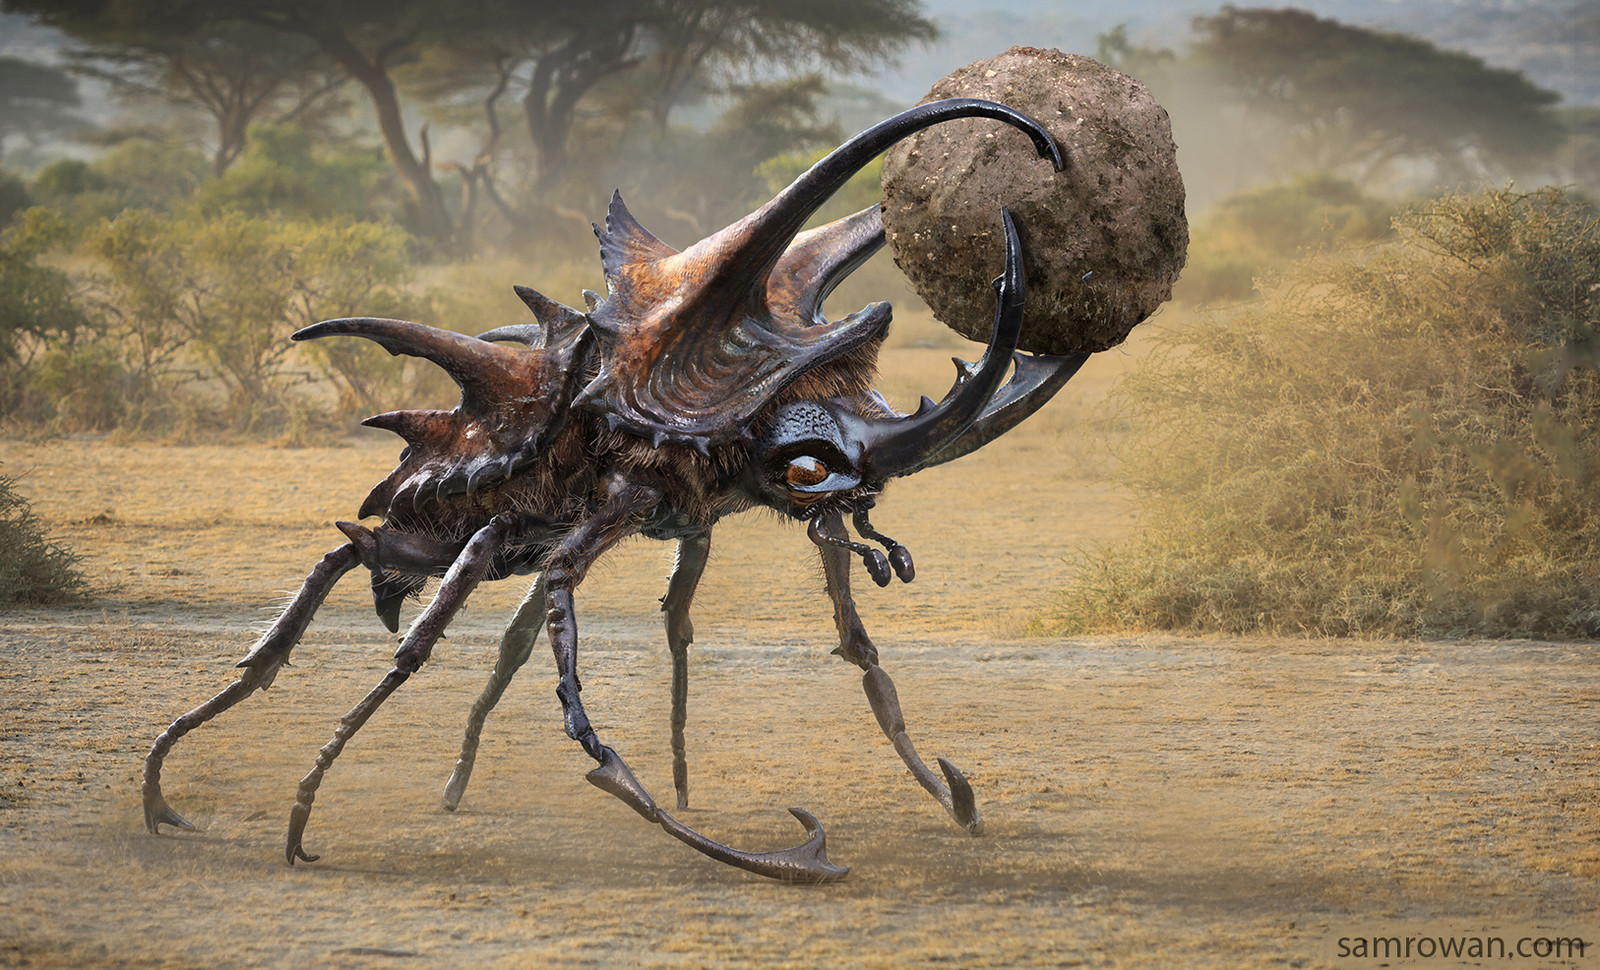 Giant dung beetle - Fantastic Beasts